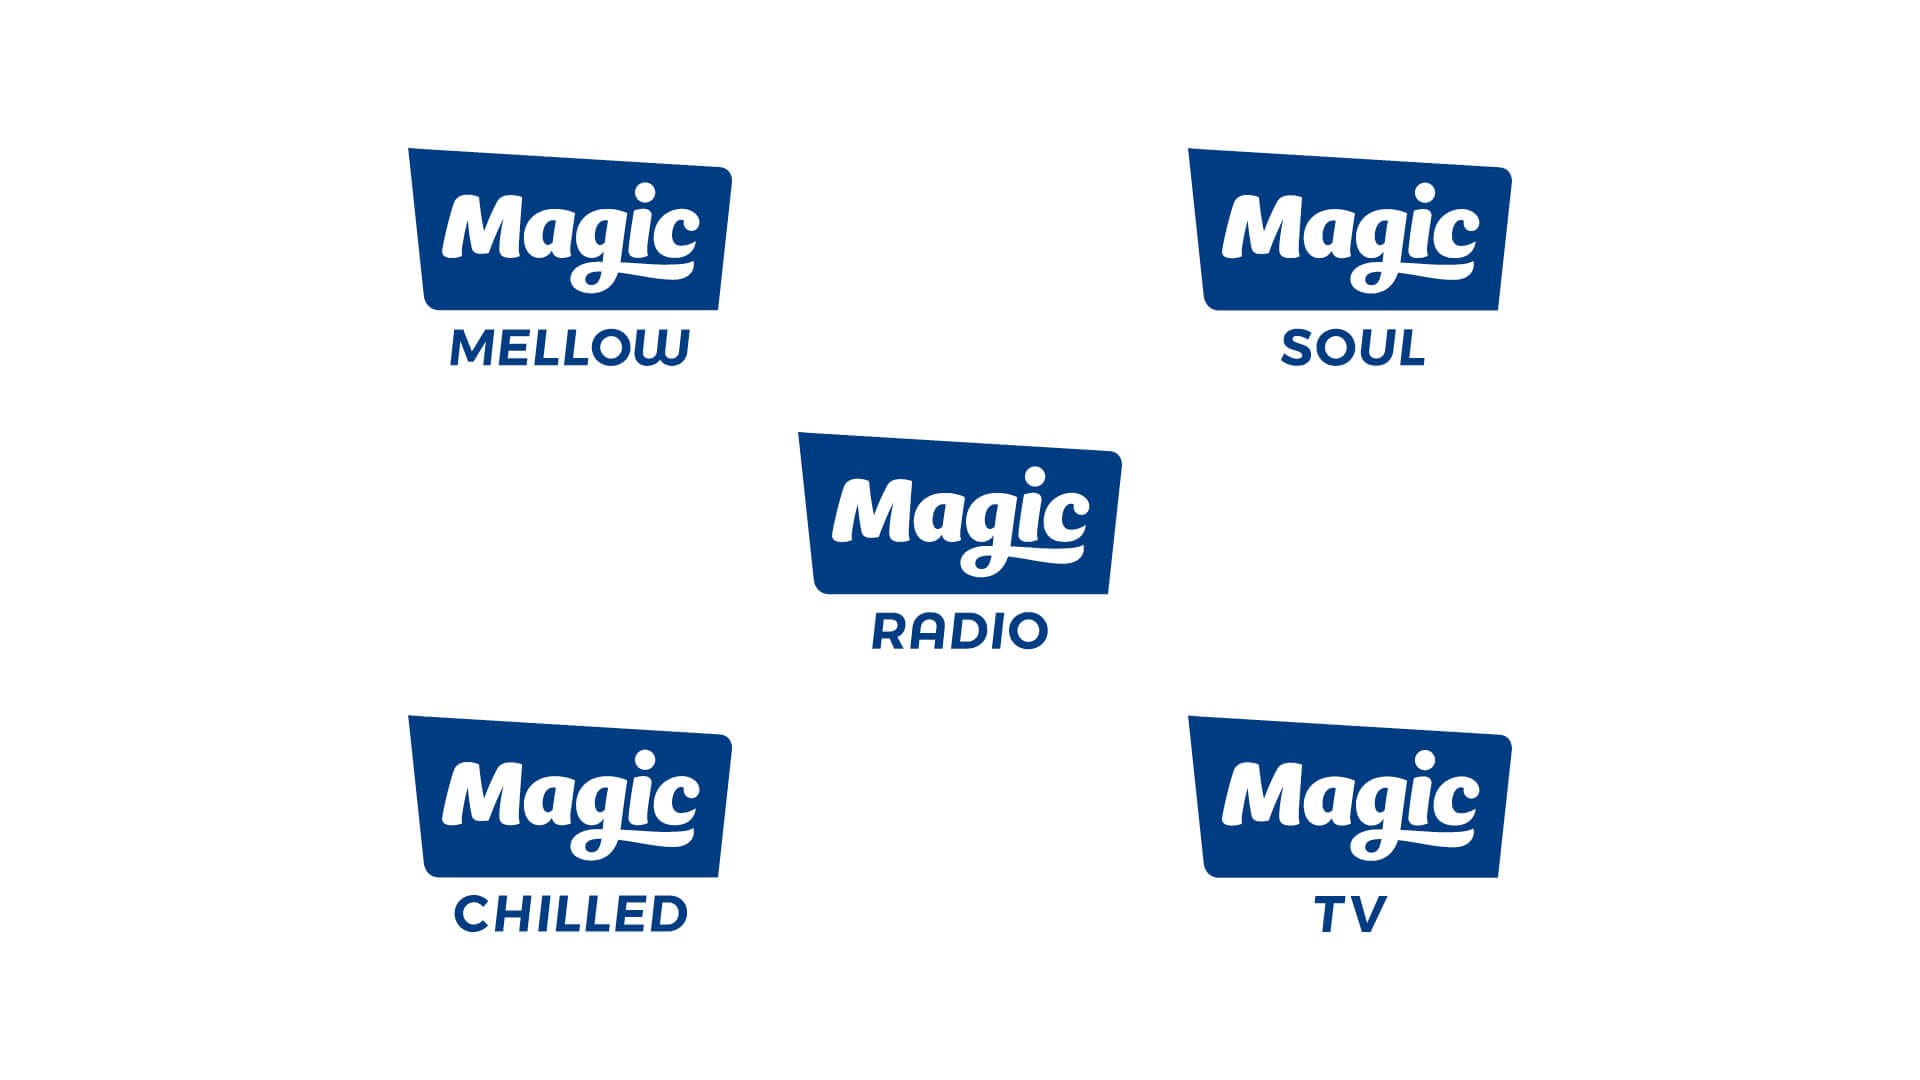 Magic radio rebranding sub-branding design system